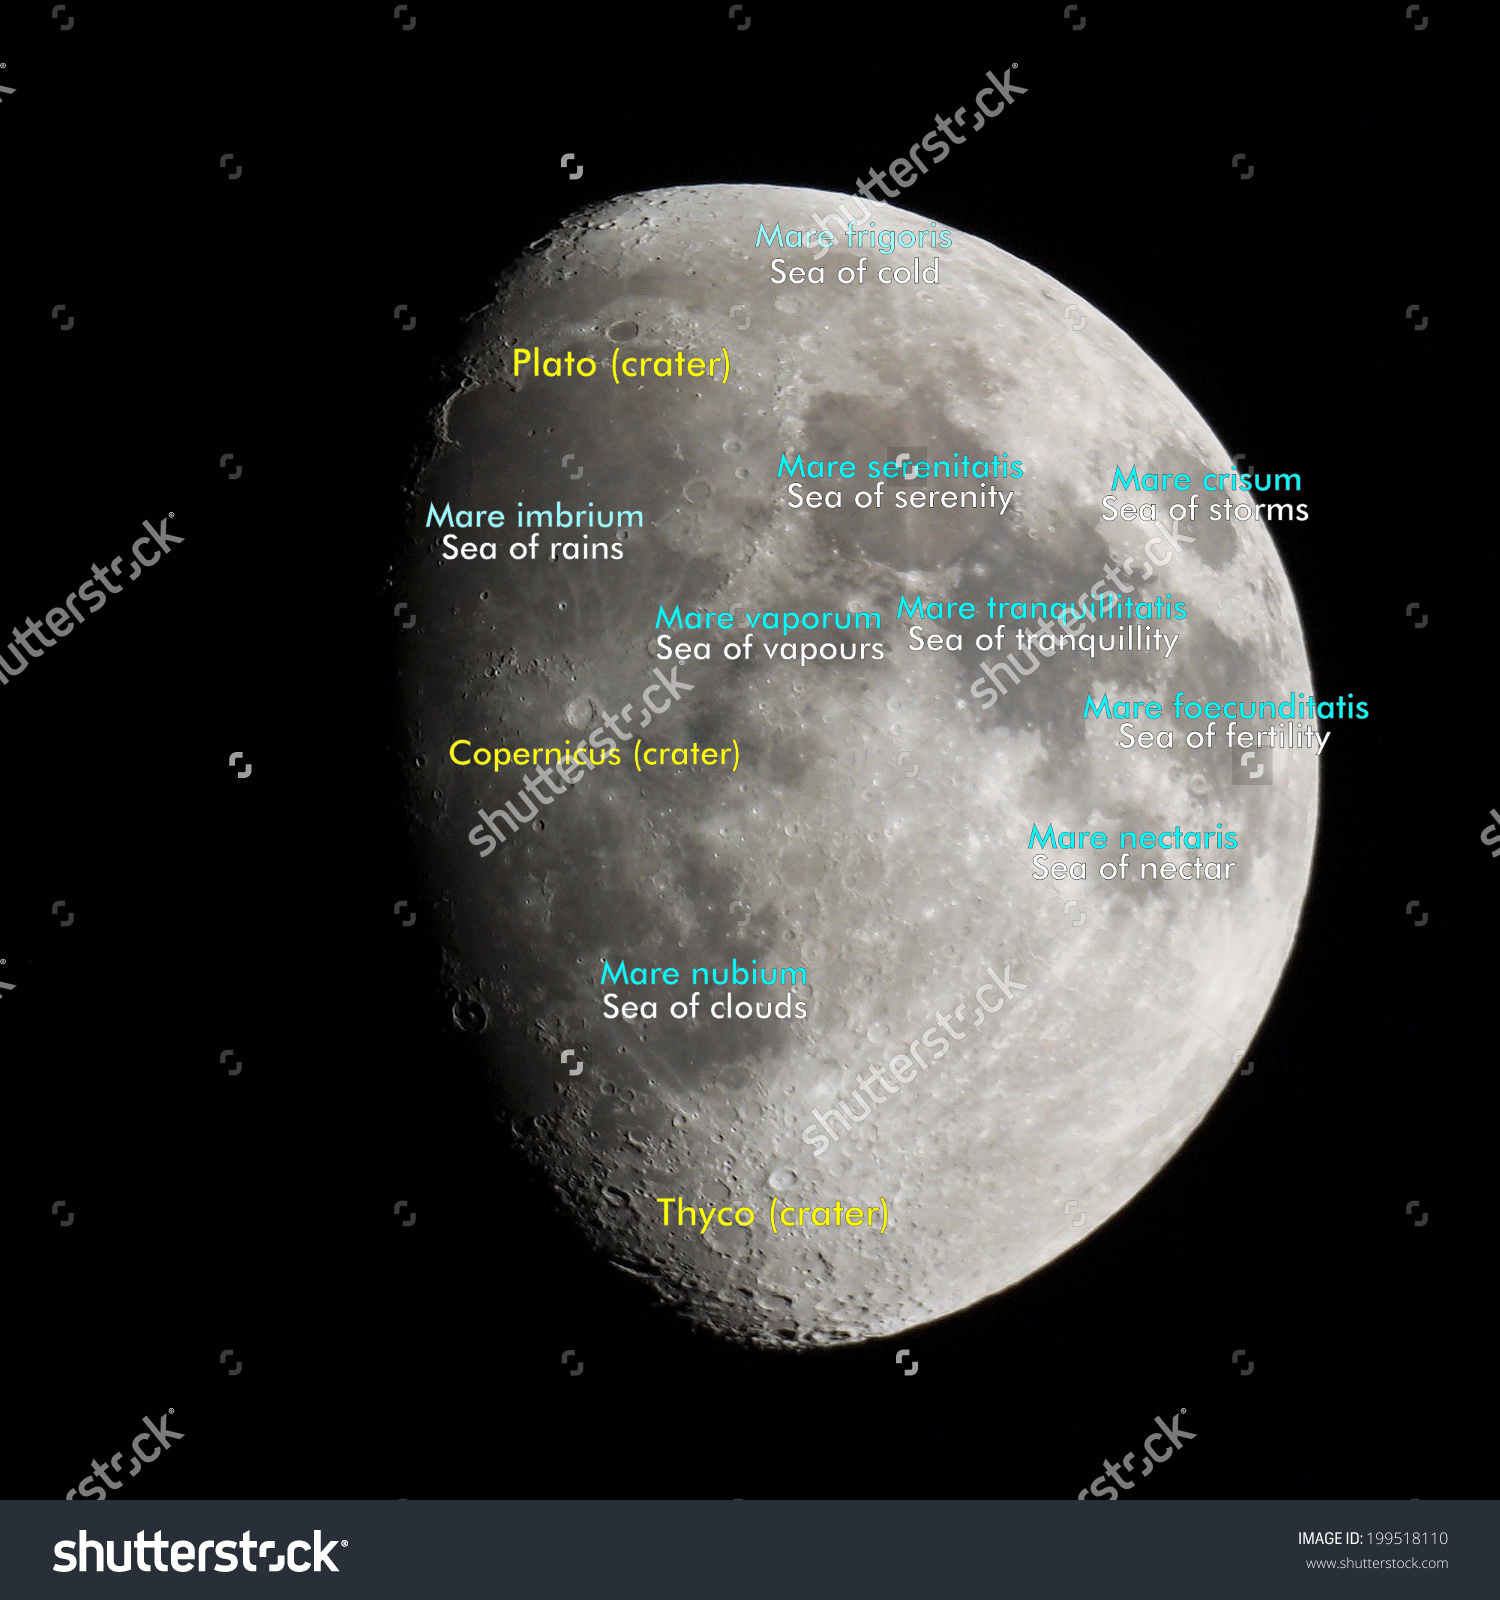 Moon Atlas With Seas And Craters Labels.